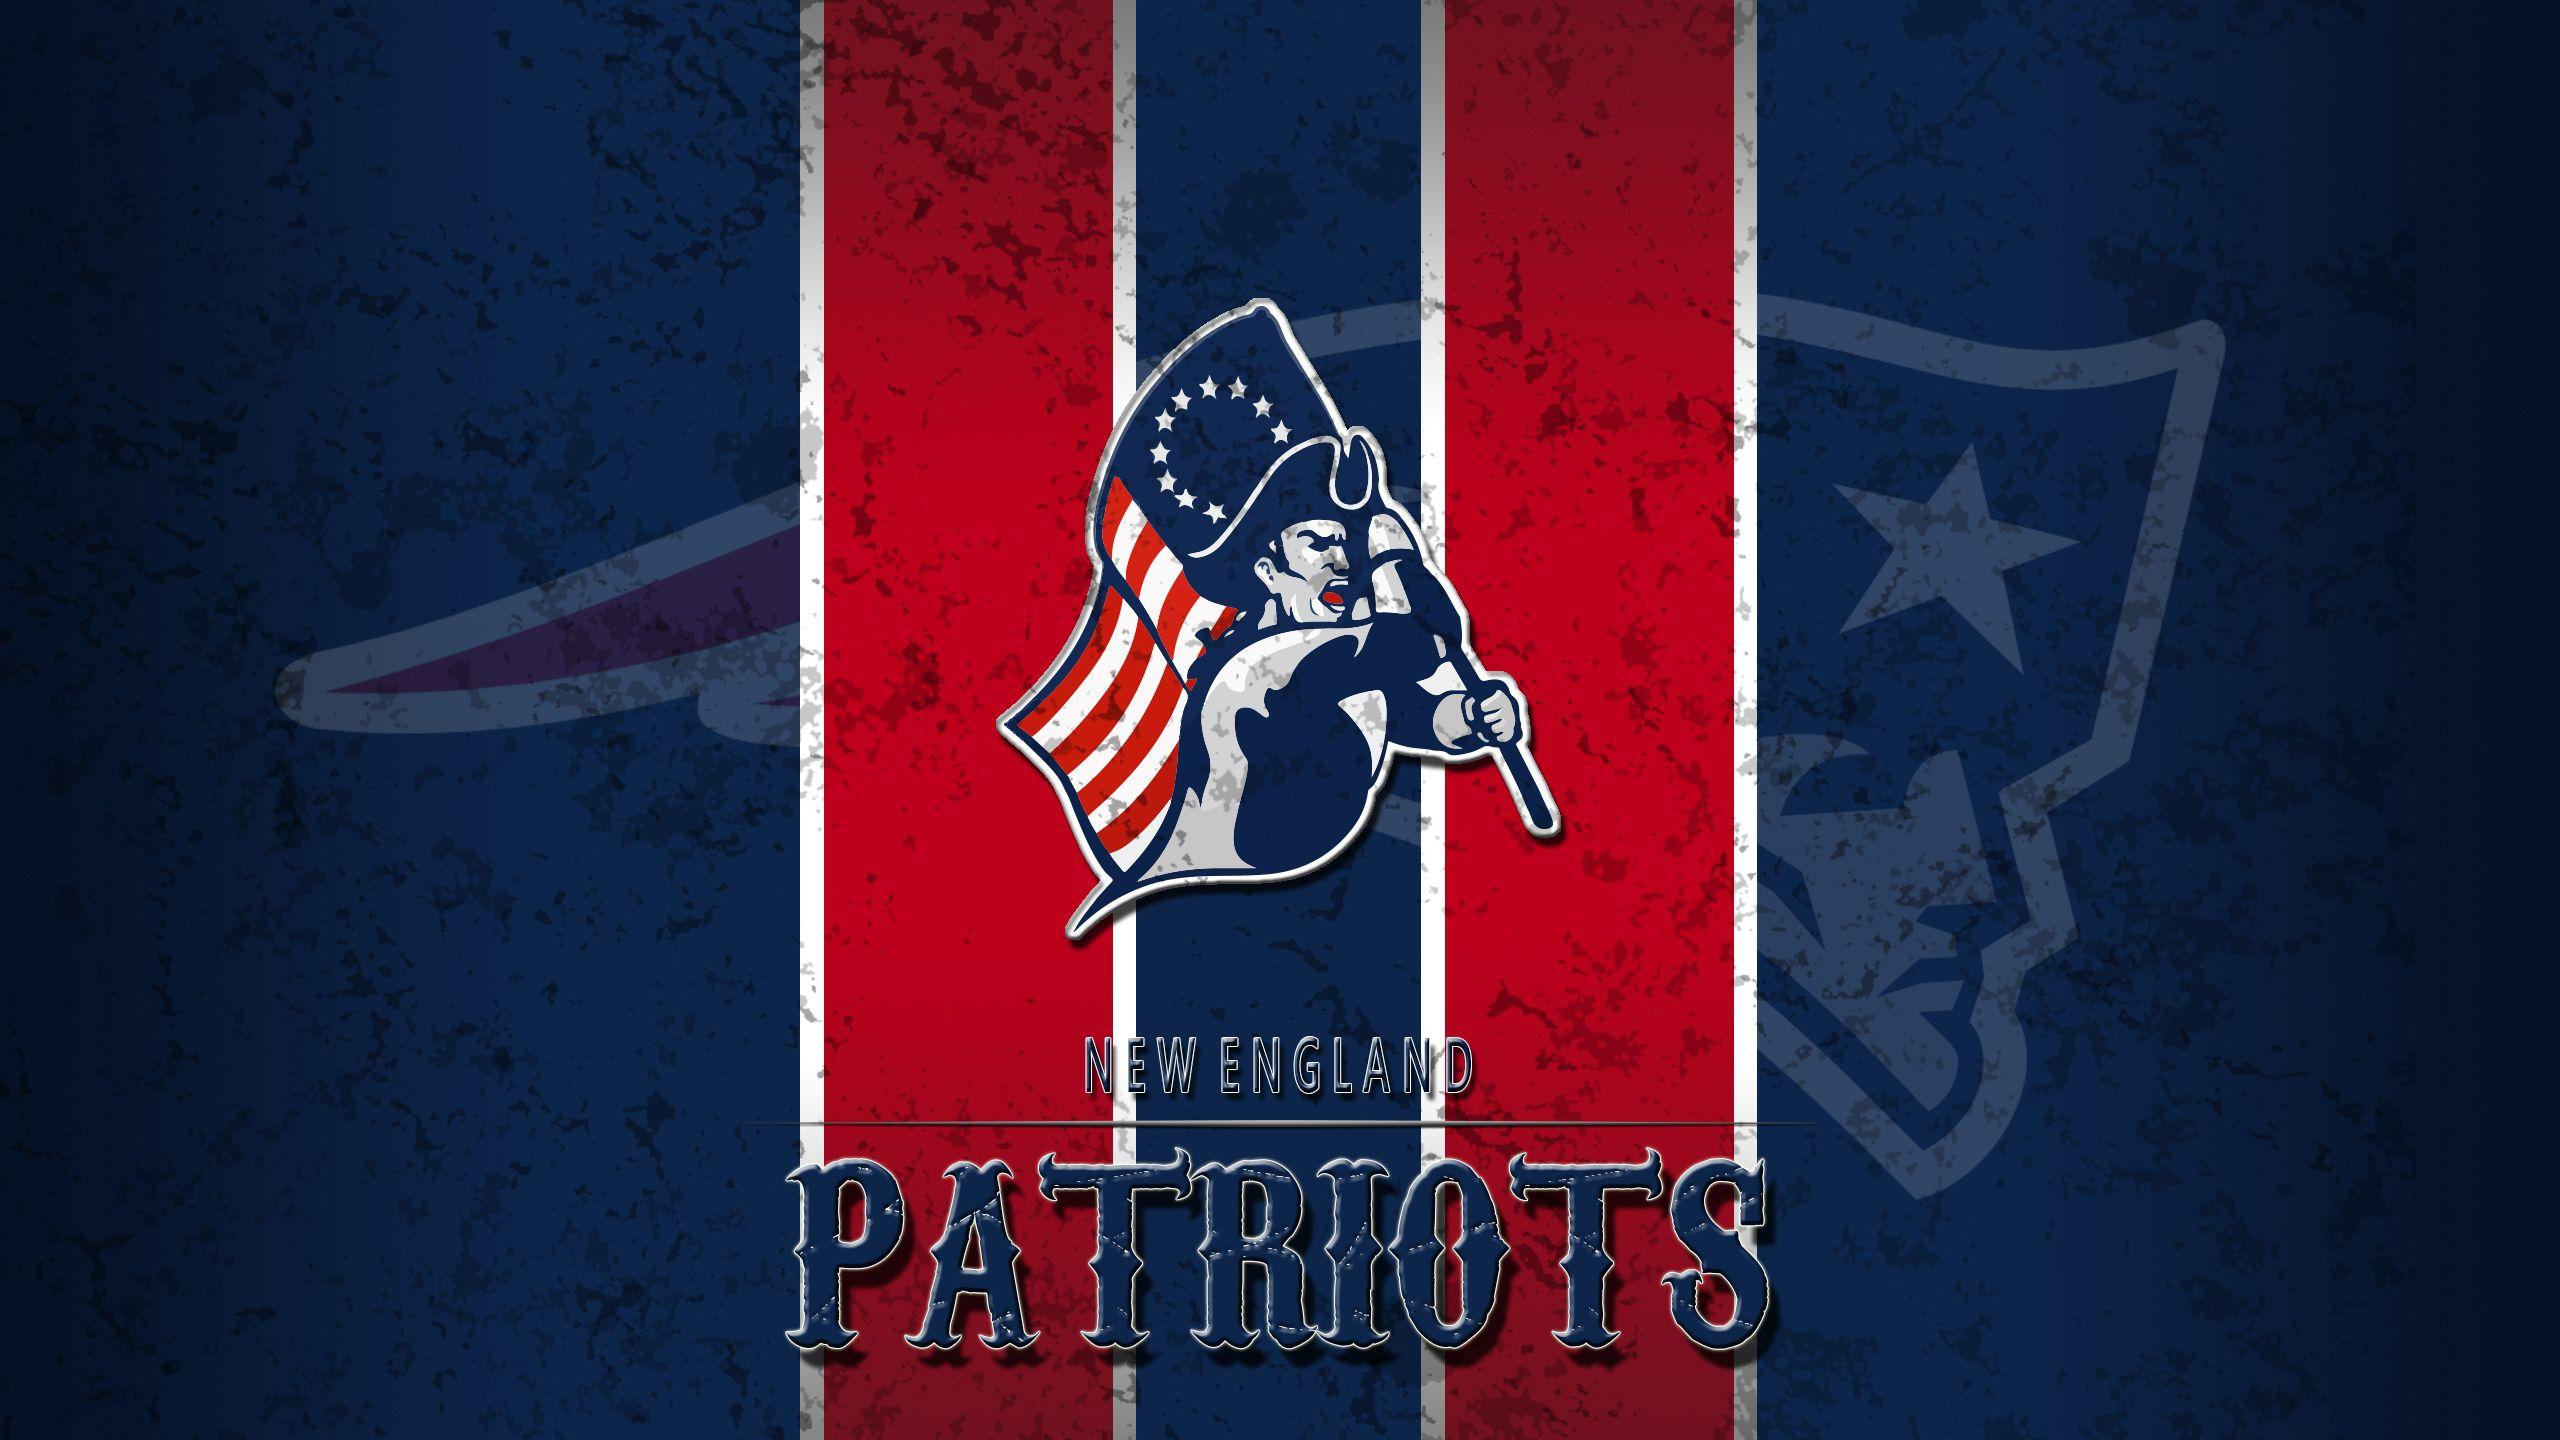 New england patriots wallpapers wallpaper cave for New cool images